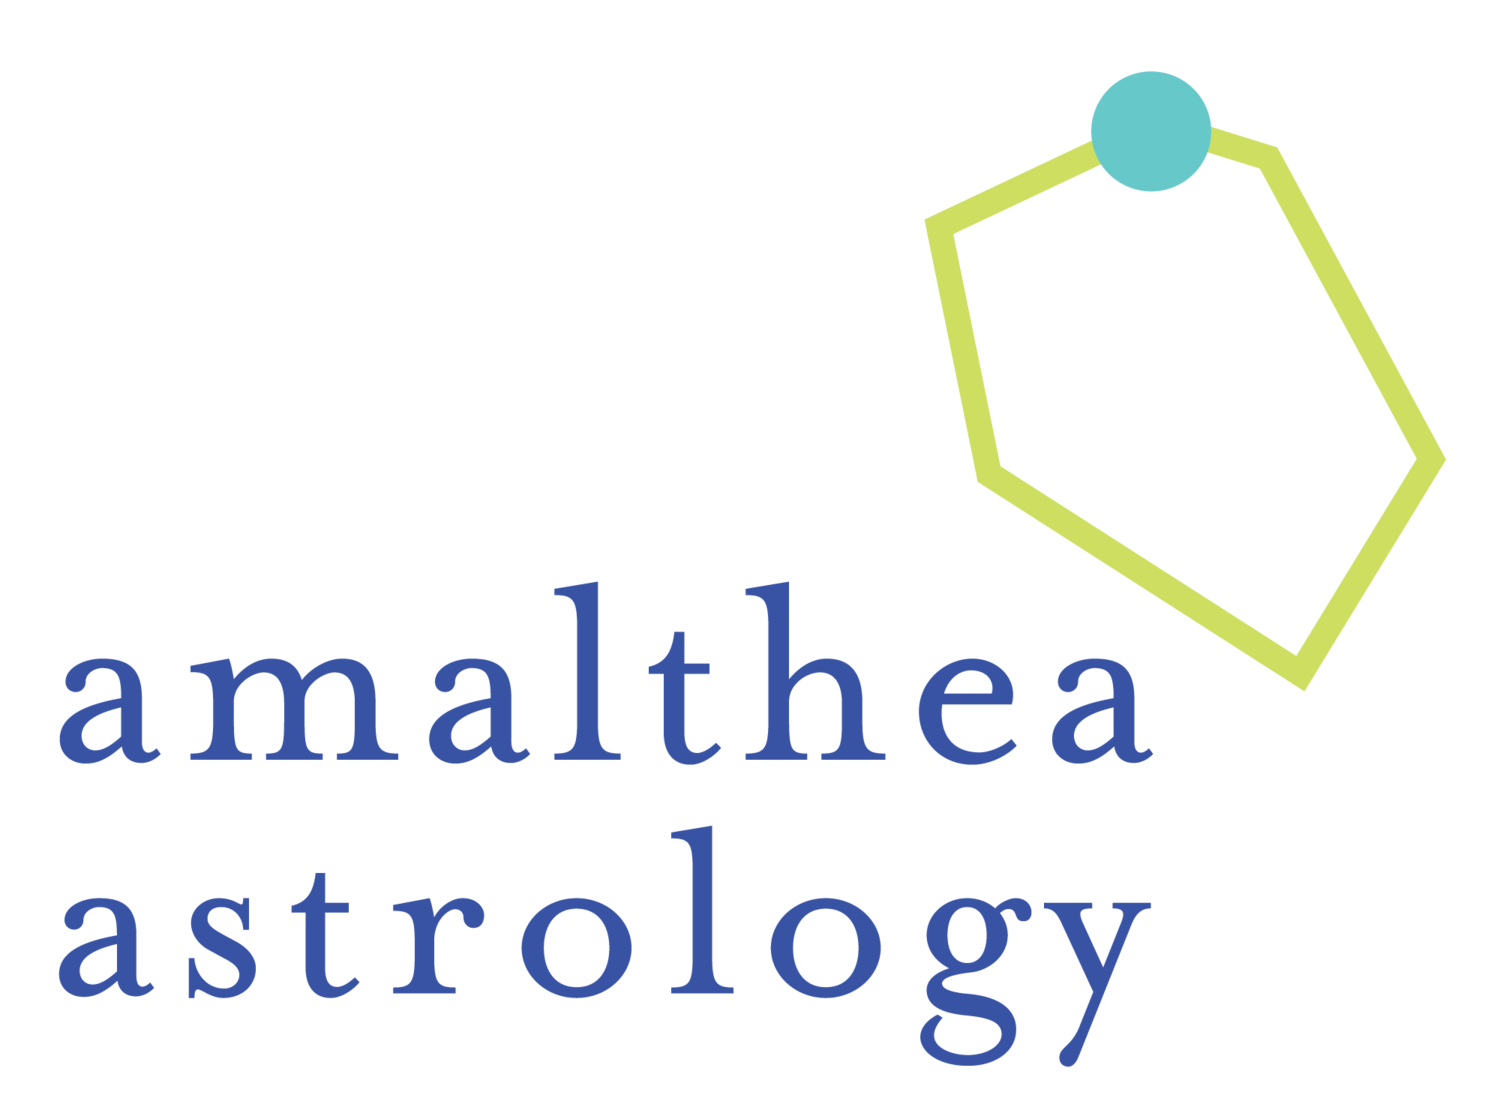 amalthea astrology